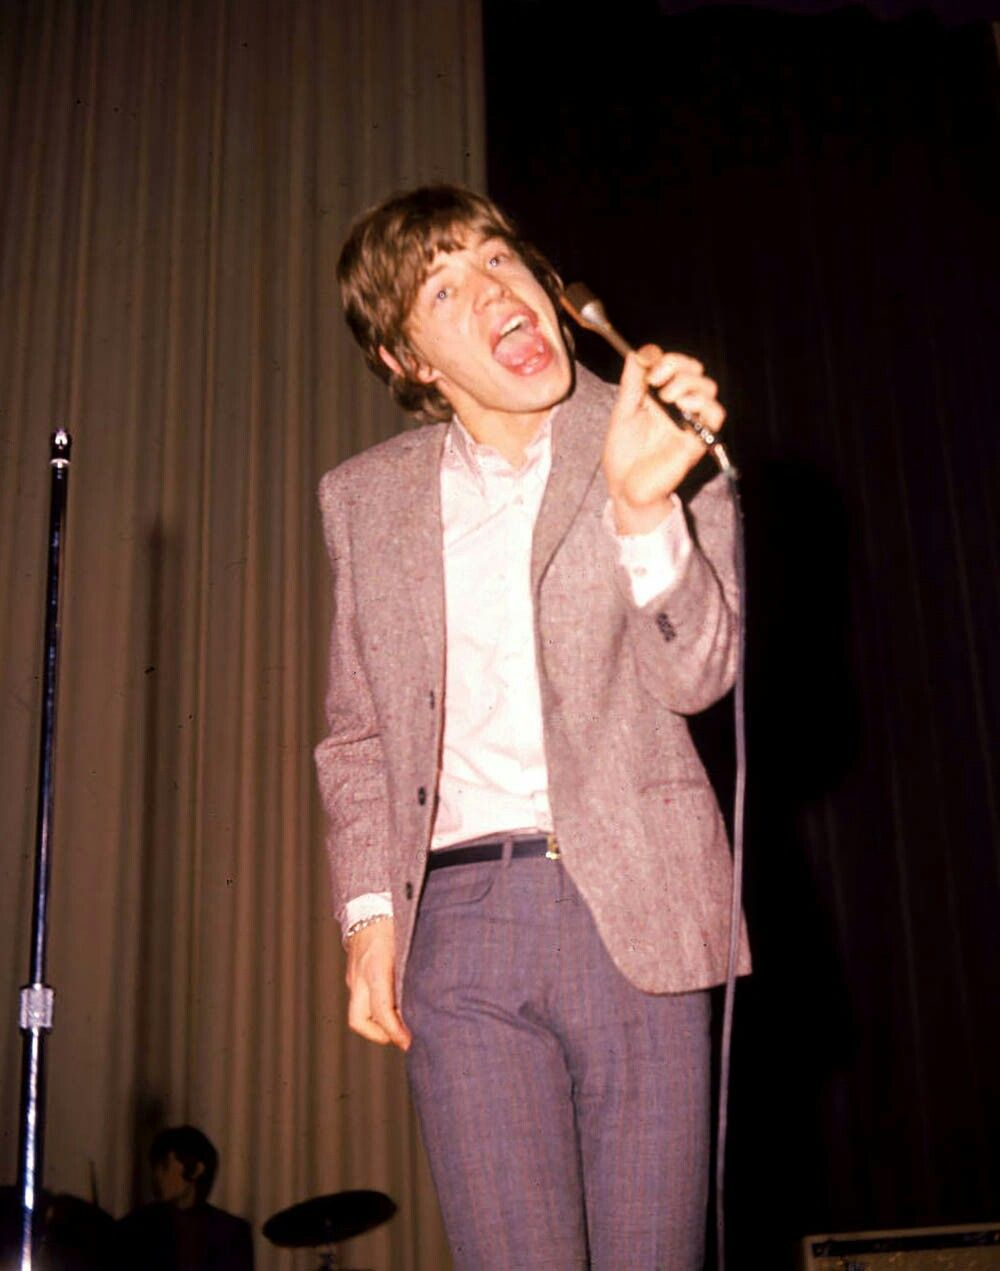 Mick jagger the rolling stones rock roll pinterest mick mick jagger the rolling stones nvjuhfo Image collections